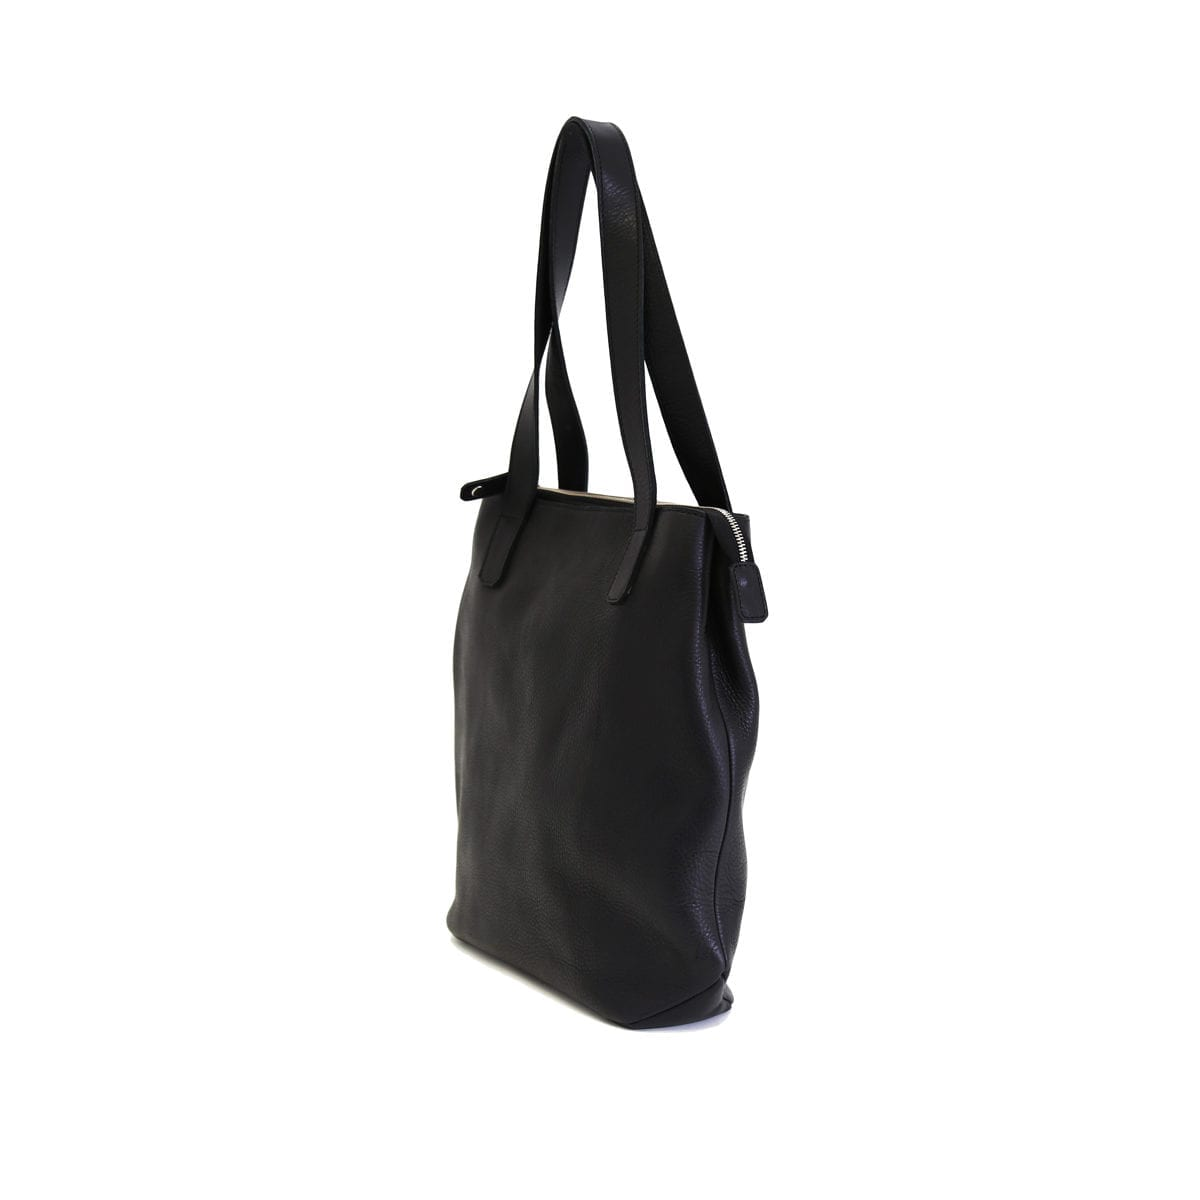 LUMI Lars Open Tote, in black, is created using vegetable tanned leather.